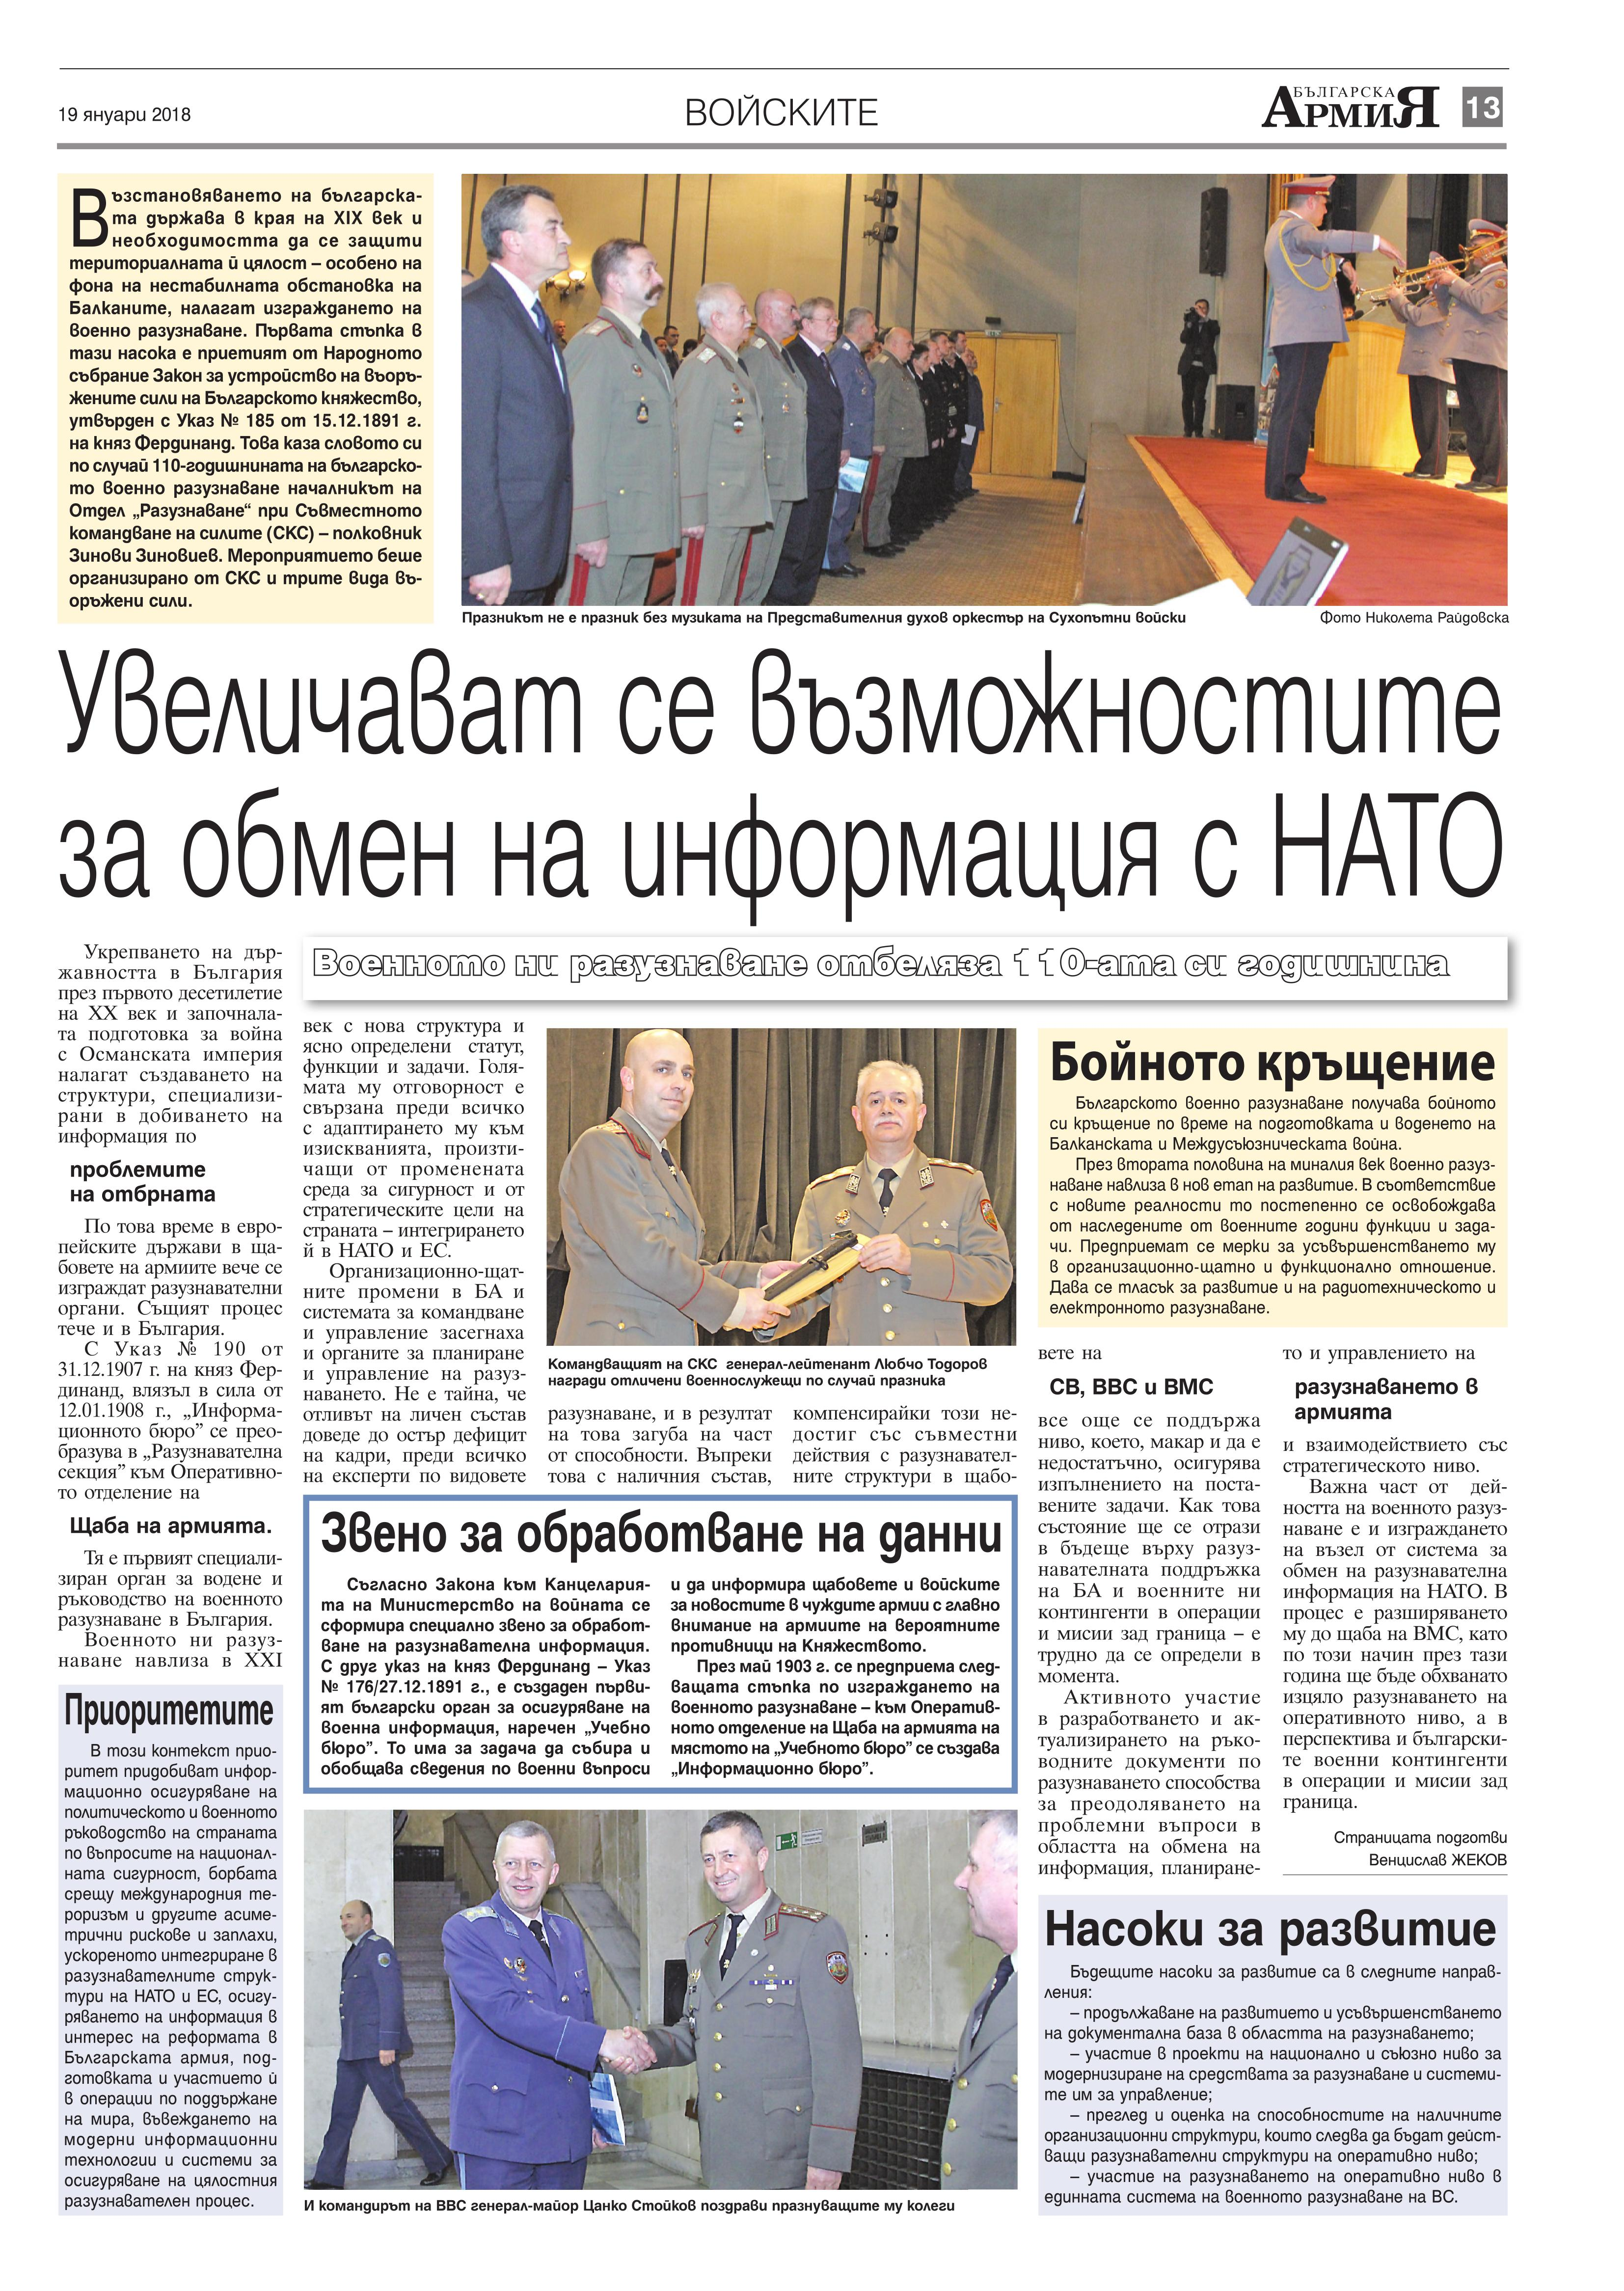 http://armymedia.bg/wp-content/uploads/2015/06/13.page1_-37.jpg